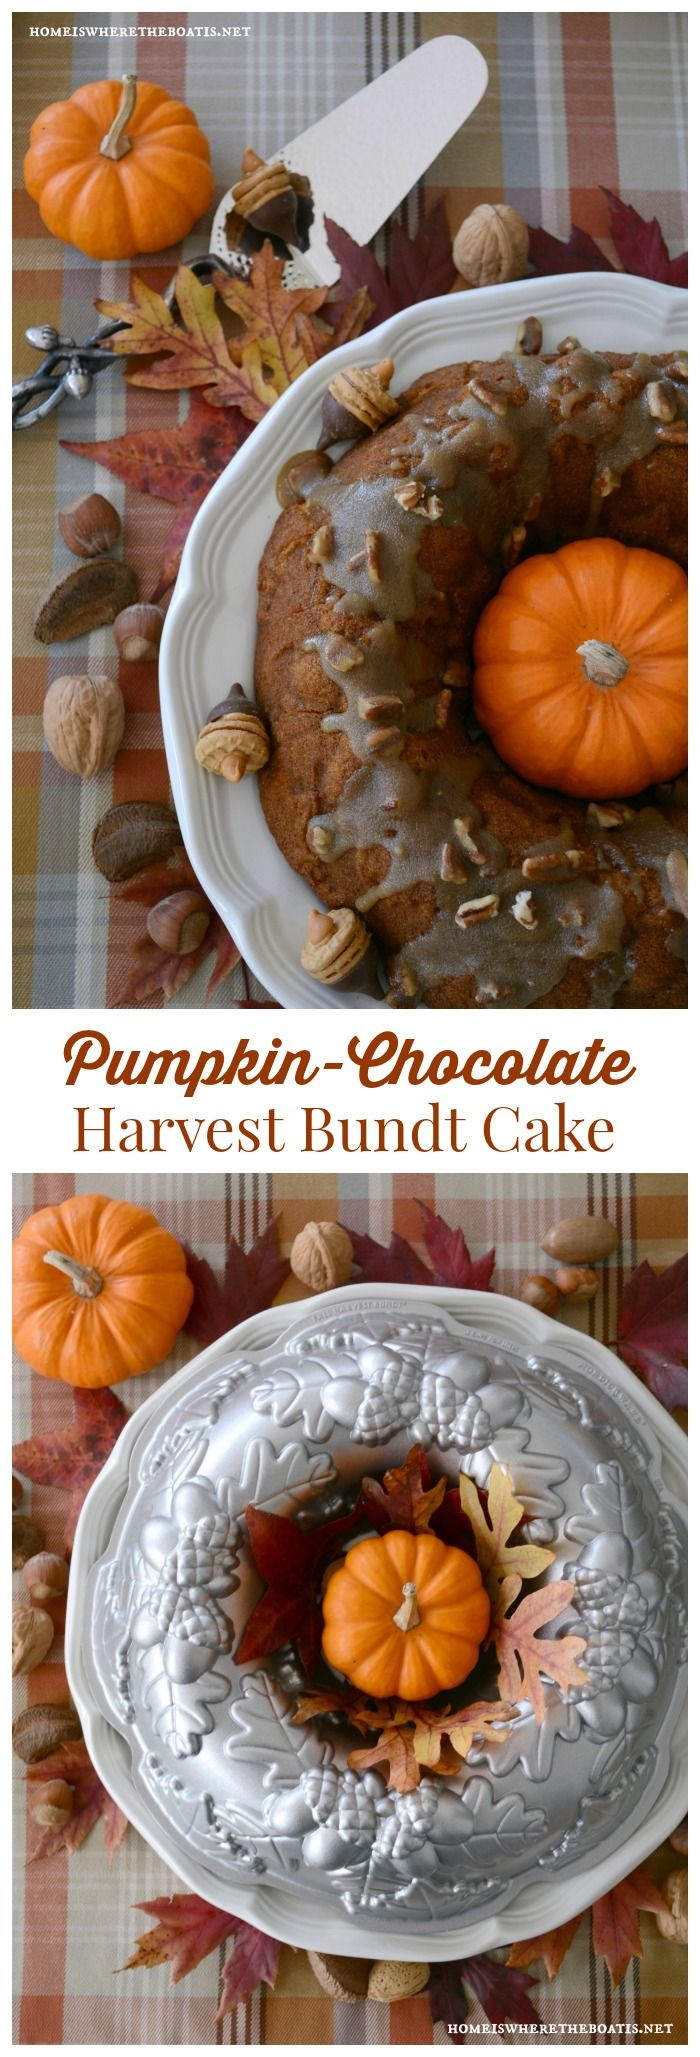 Keep Calm and Bundt On: Pumpkin Chocolate Harvest Bundt Cake!